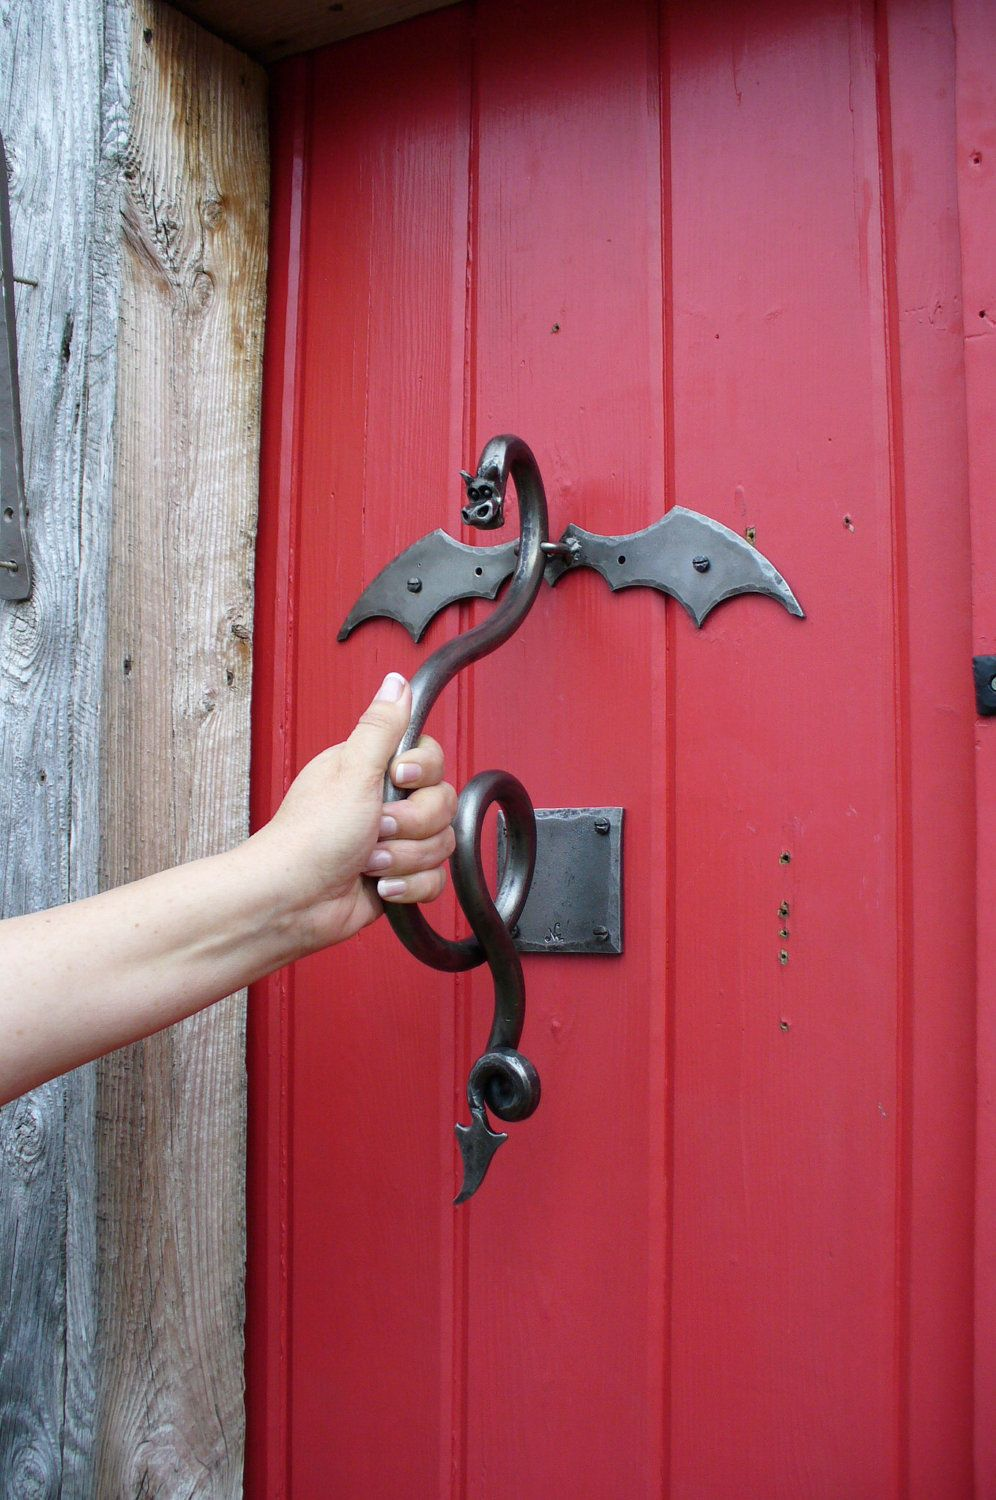 DRAGON DOOR KNOCKER Sculpture Hand Forged by Blacksmith Naz. $250.00 via Etsy. #red #doors #myobsessionwithreddoors & DRAGON DOOR KNOCKER (Large) Sculpture Hand Forged and Signed by ...